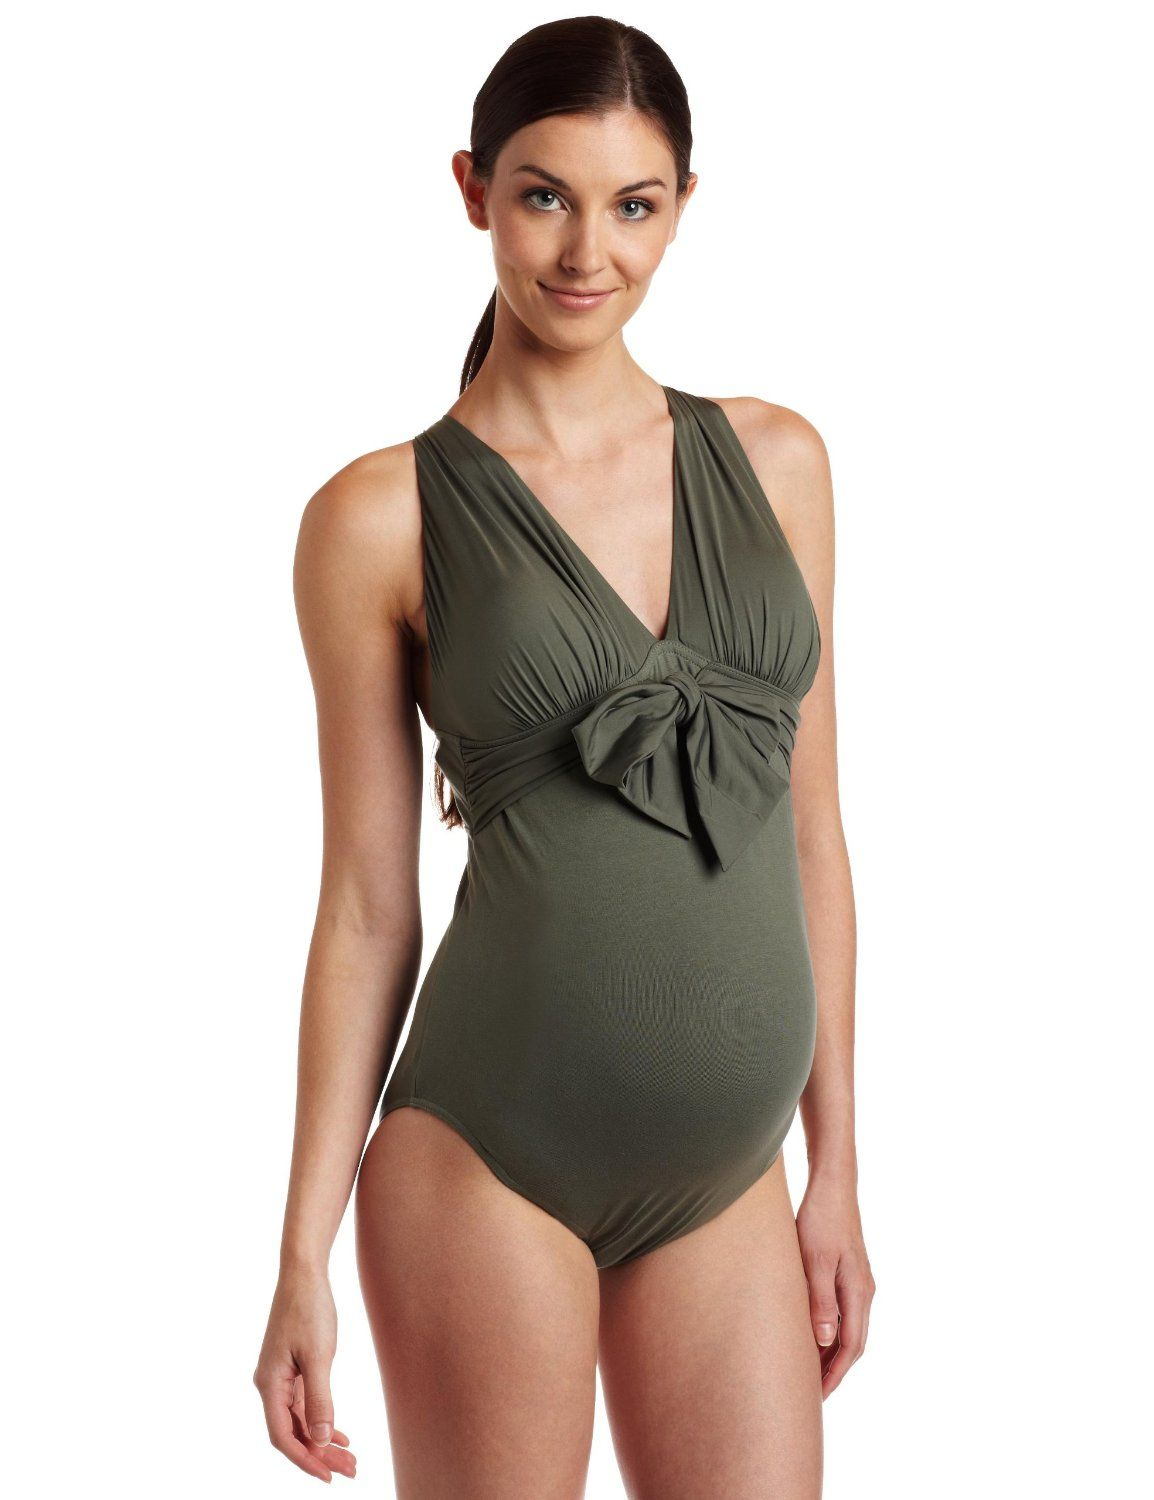 Shop for maternity swimwear online at Target. Free shipping on purchases over $35 and save 5% every day with your Target REDcard.